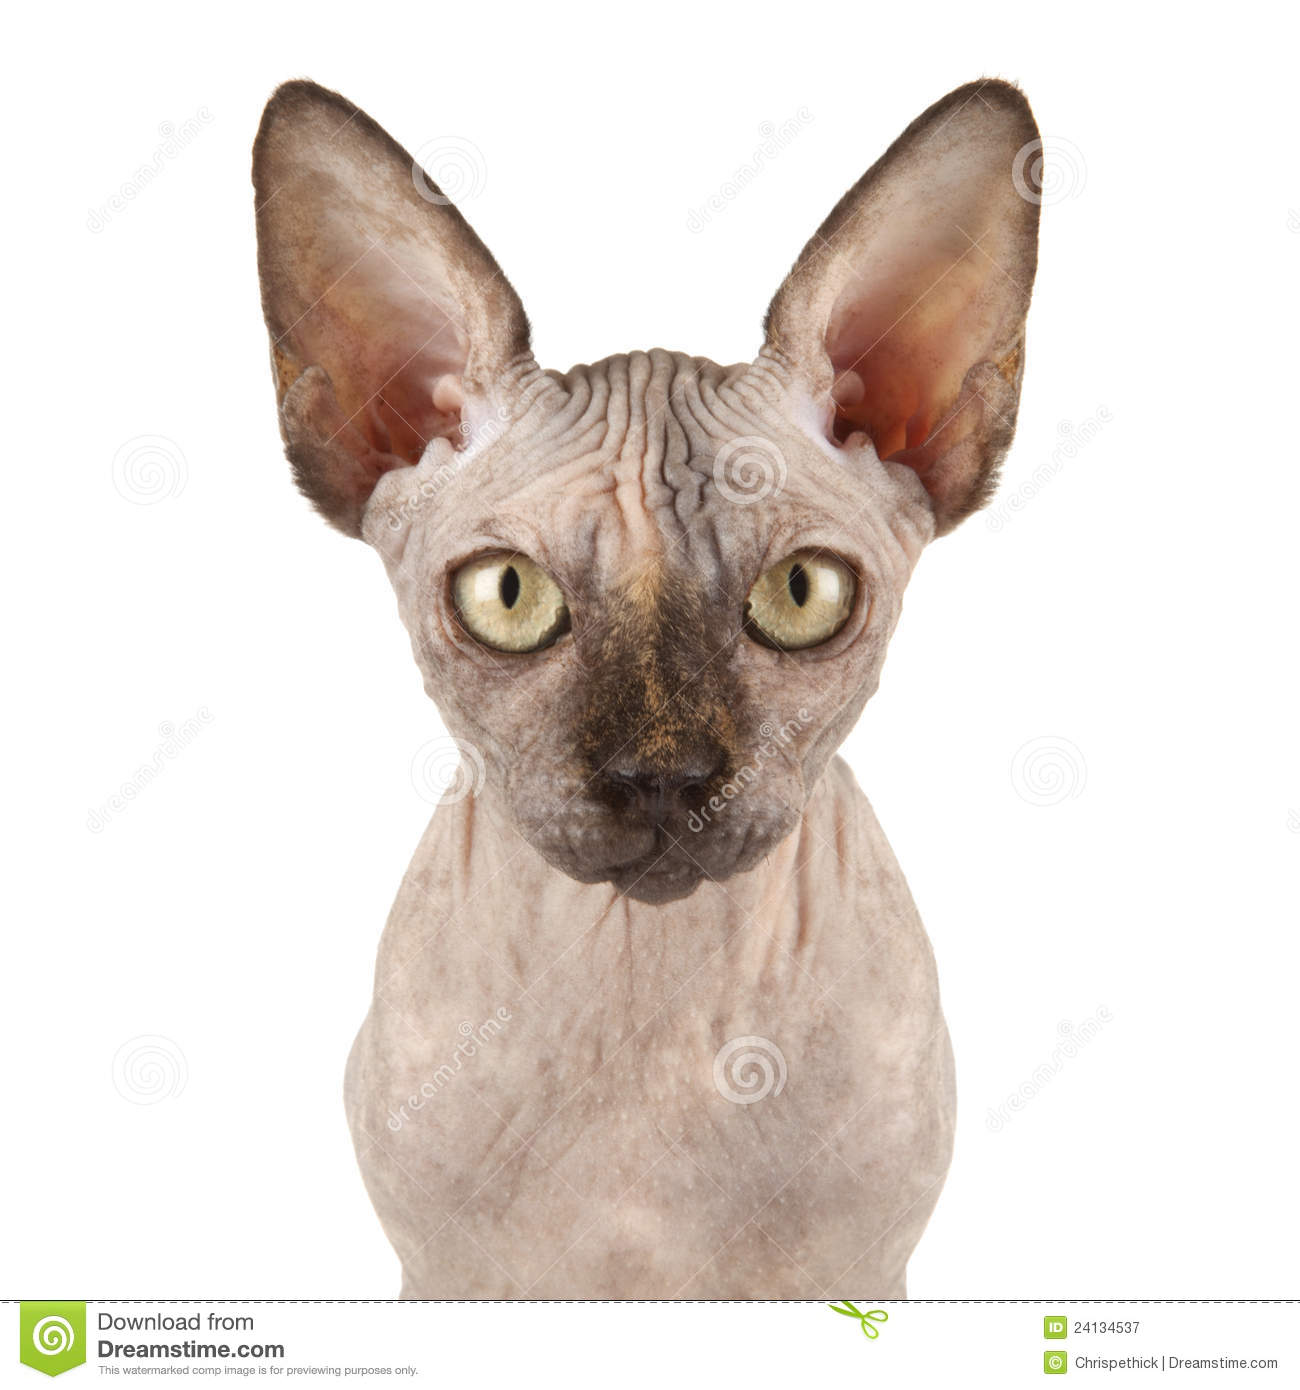 sphynx cat royalty free stock photography image 24134537